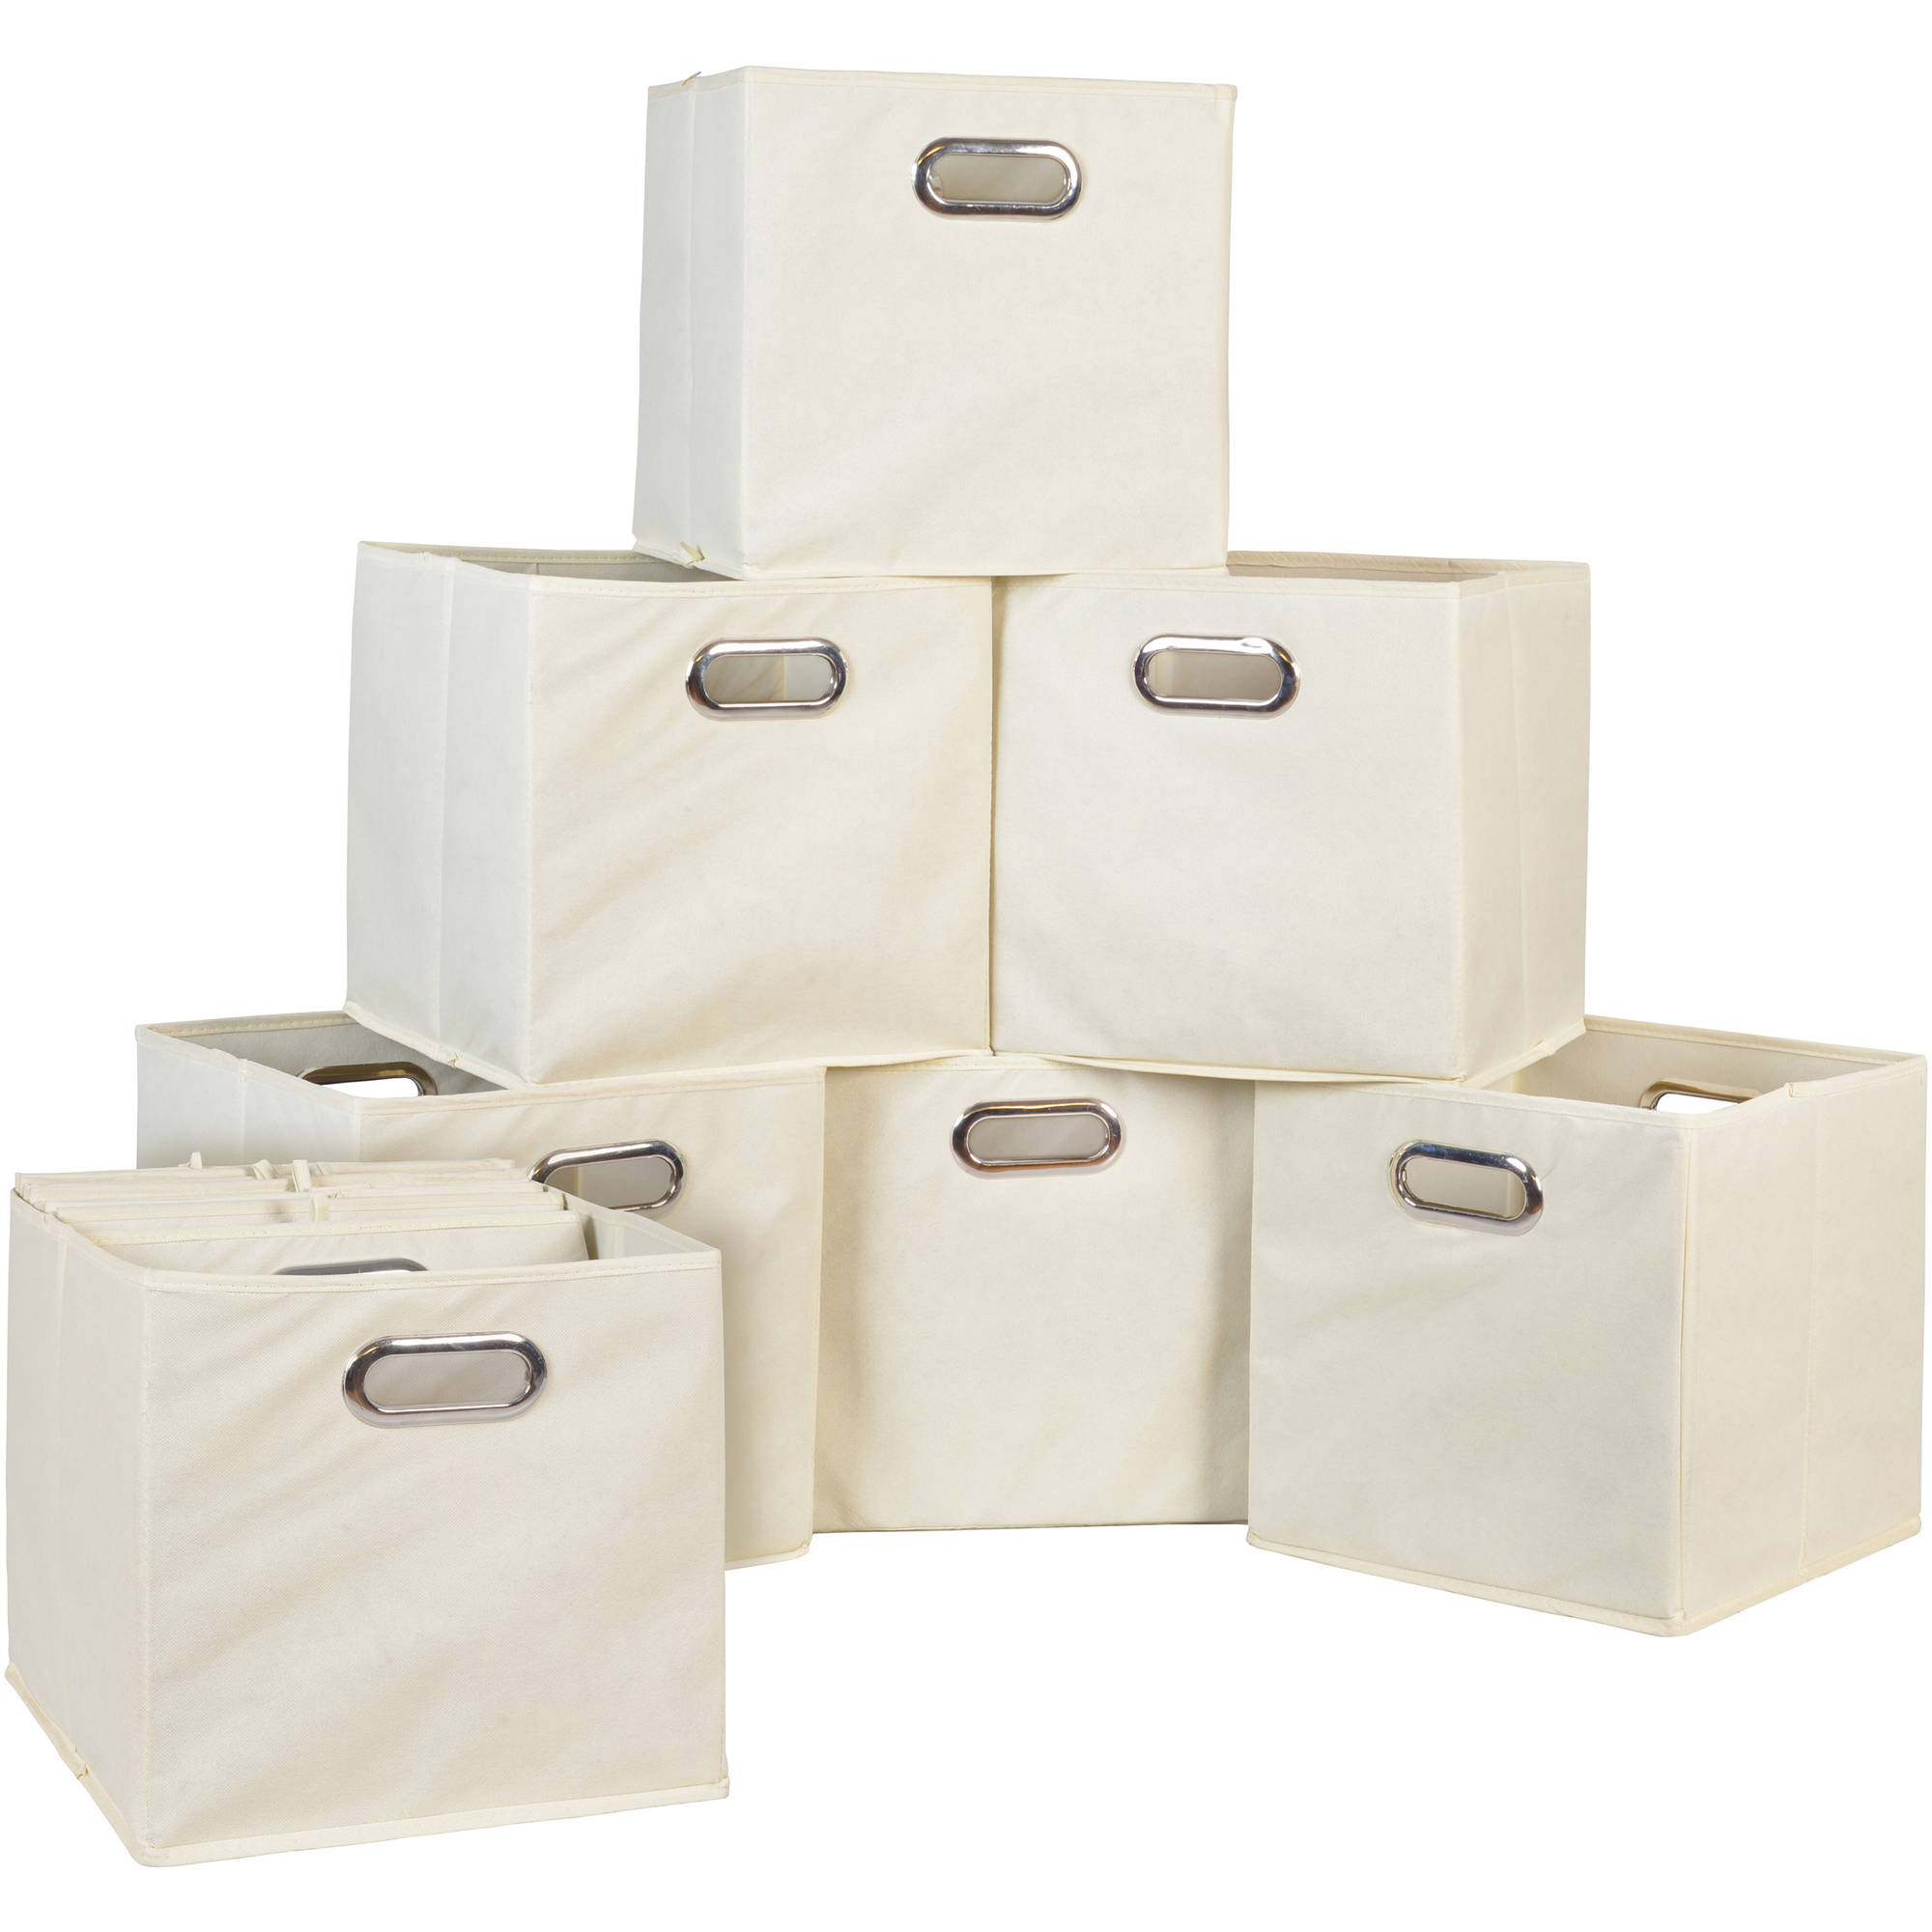 Attirant Niche Cubo Foldable Fabric Storage Bin, Set Of 12